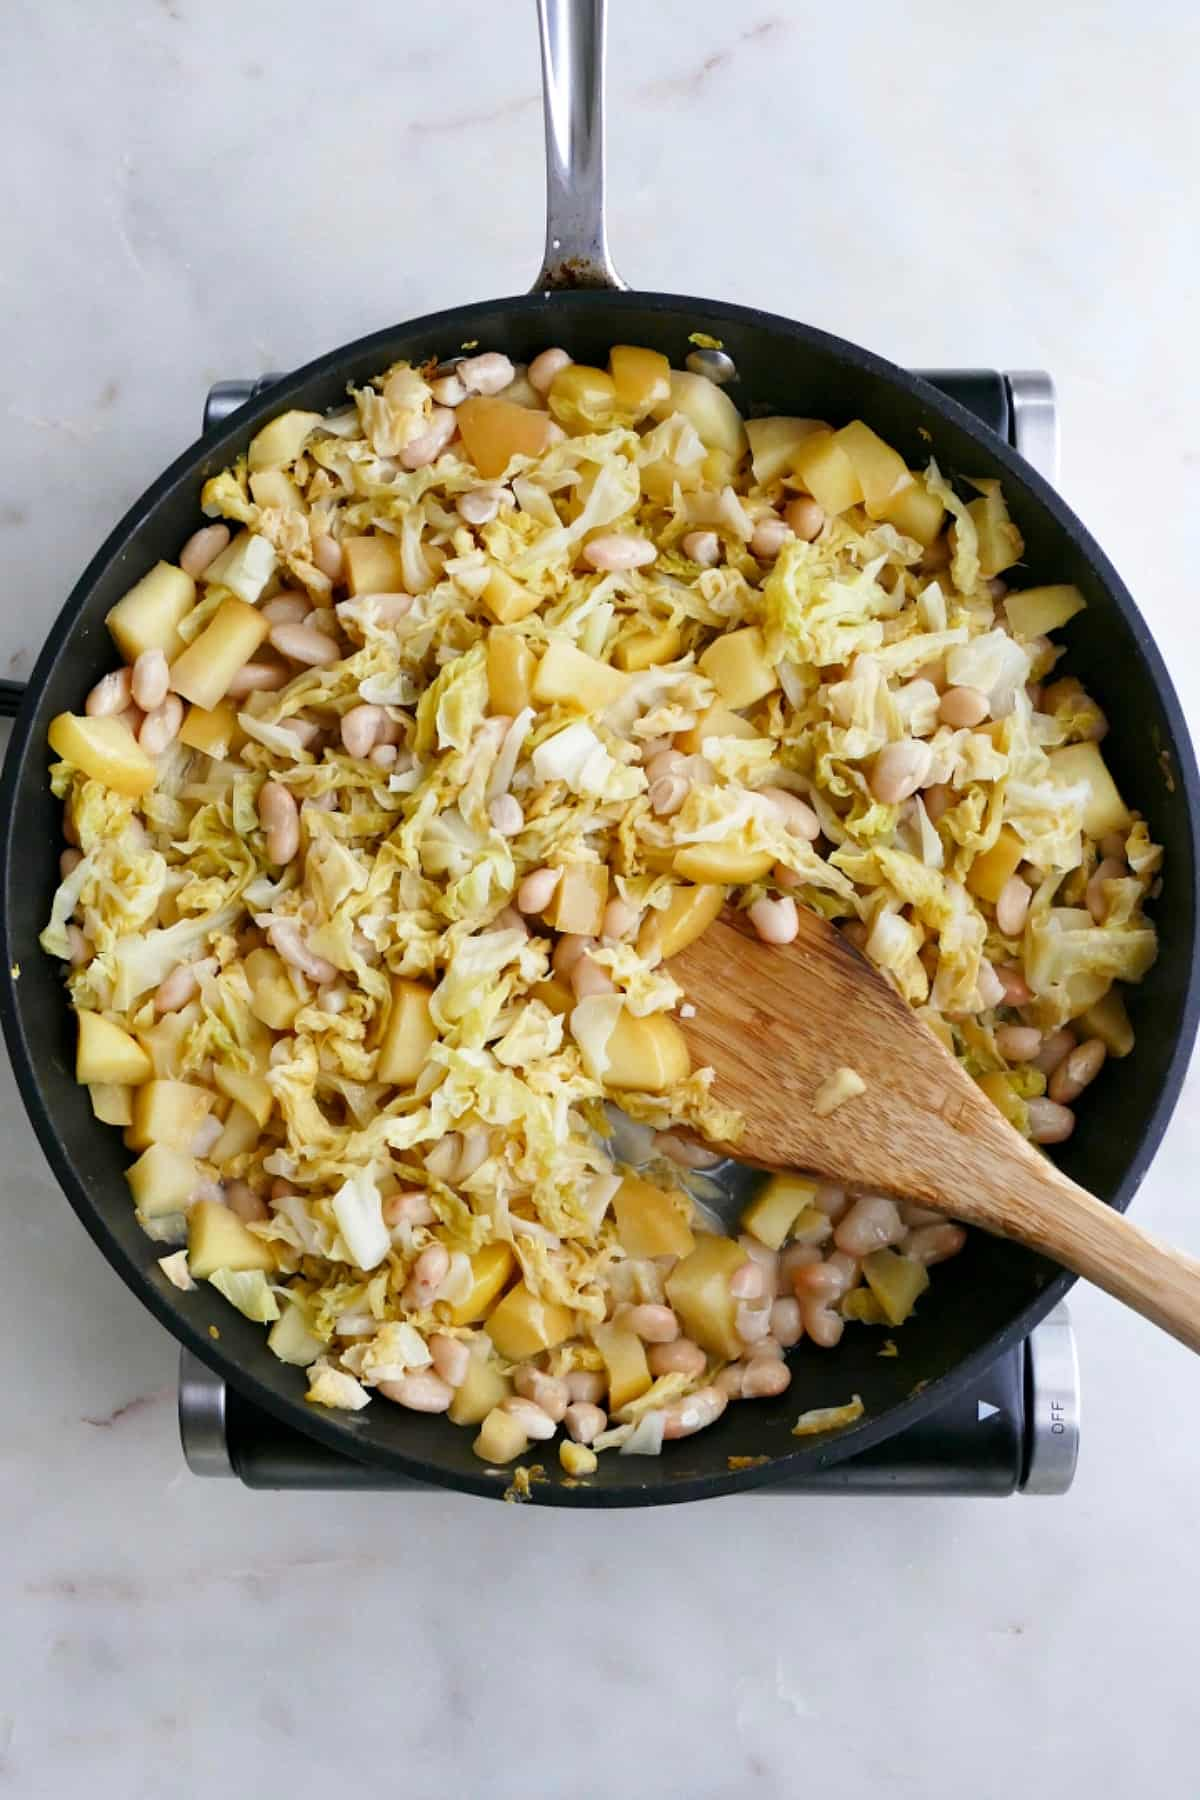 stewed cabbage, apples, and white beans in a large skillet with a wooden spoon